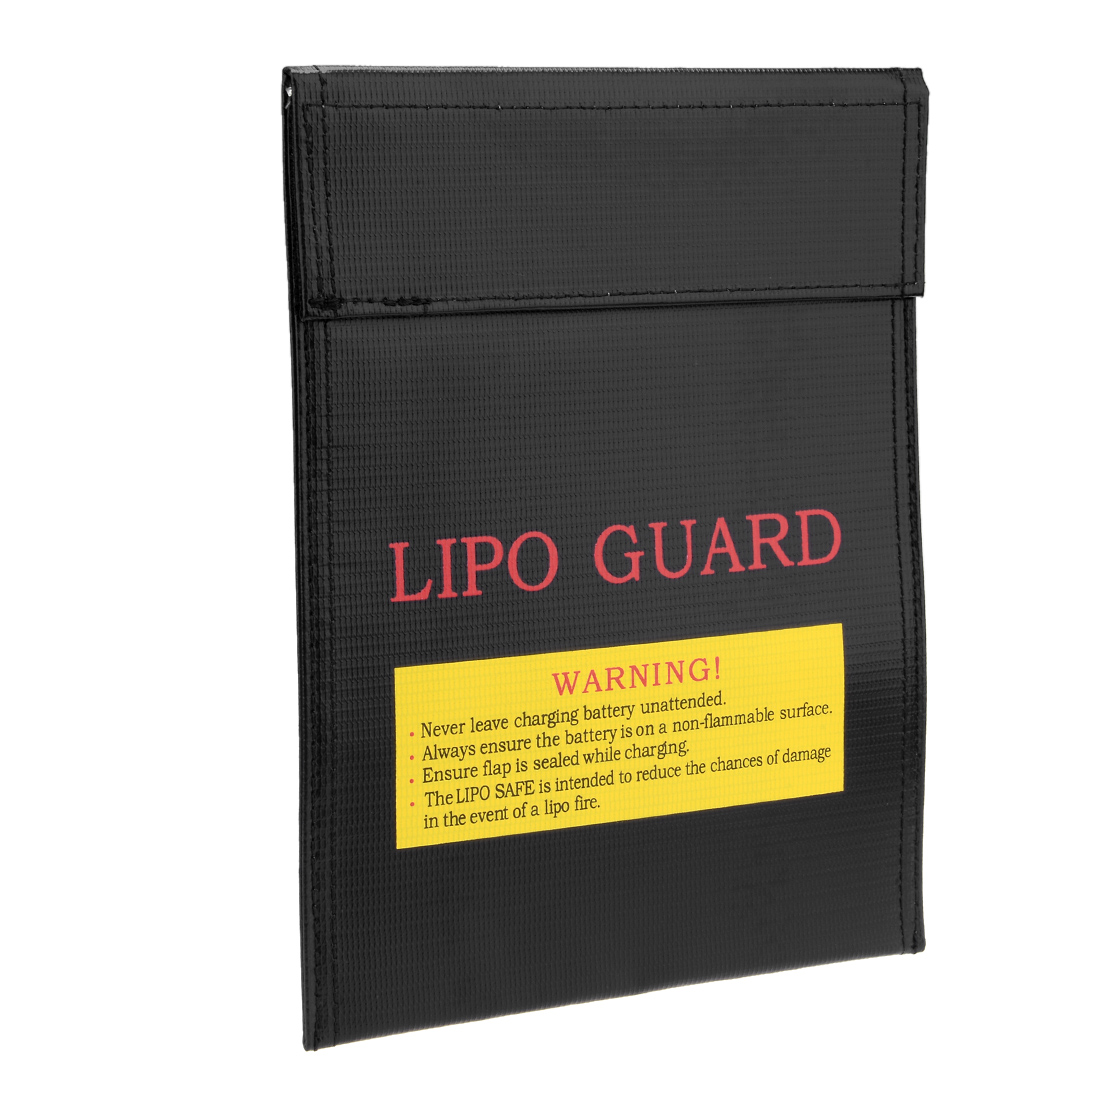 Lipo Battery Fireproof Explosionproof Bag Storage Guard Safe Charging Holder 18cm x 23cm Black